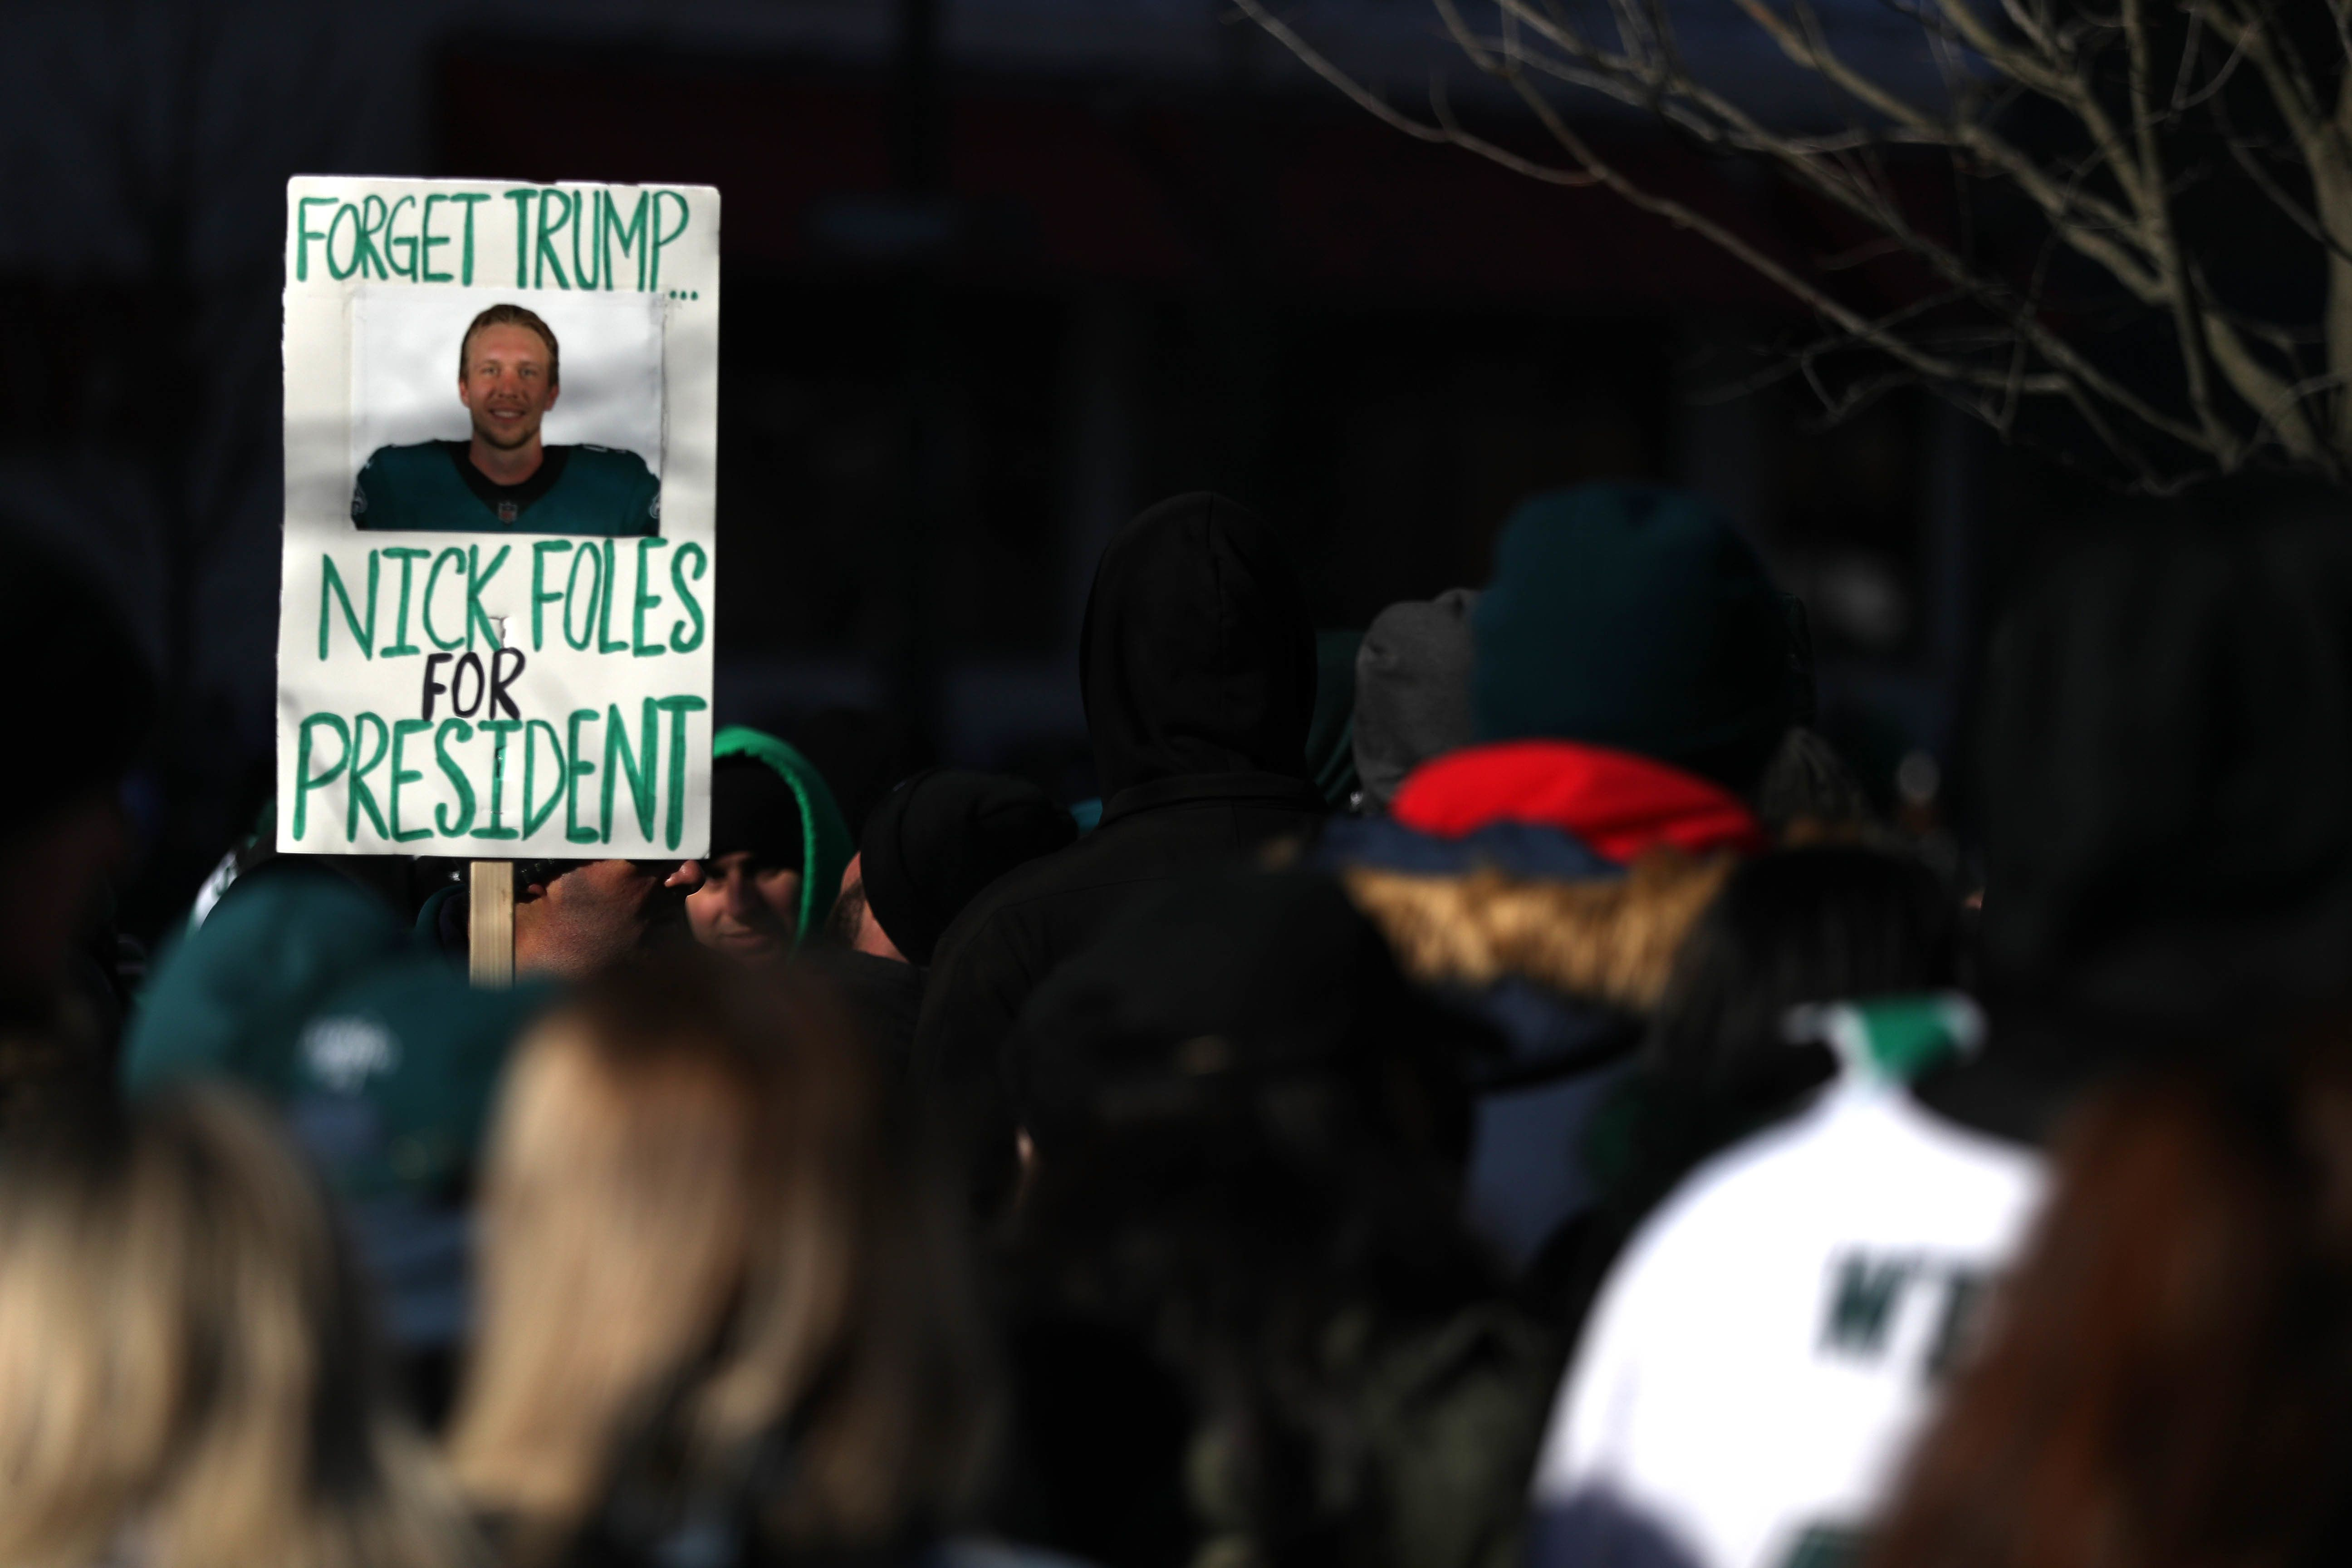 A sign held up during the Eagles' Super Bowl victory parade on Feb. 8 in Philadelphia.